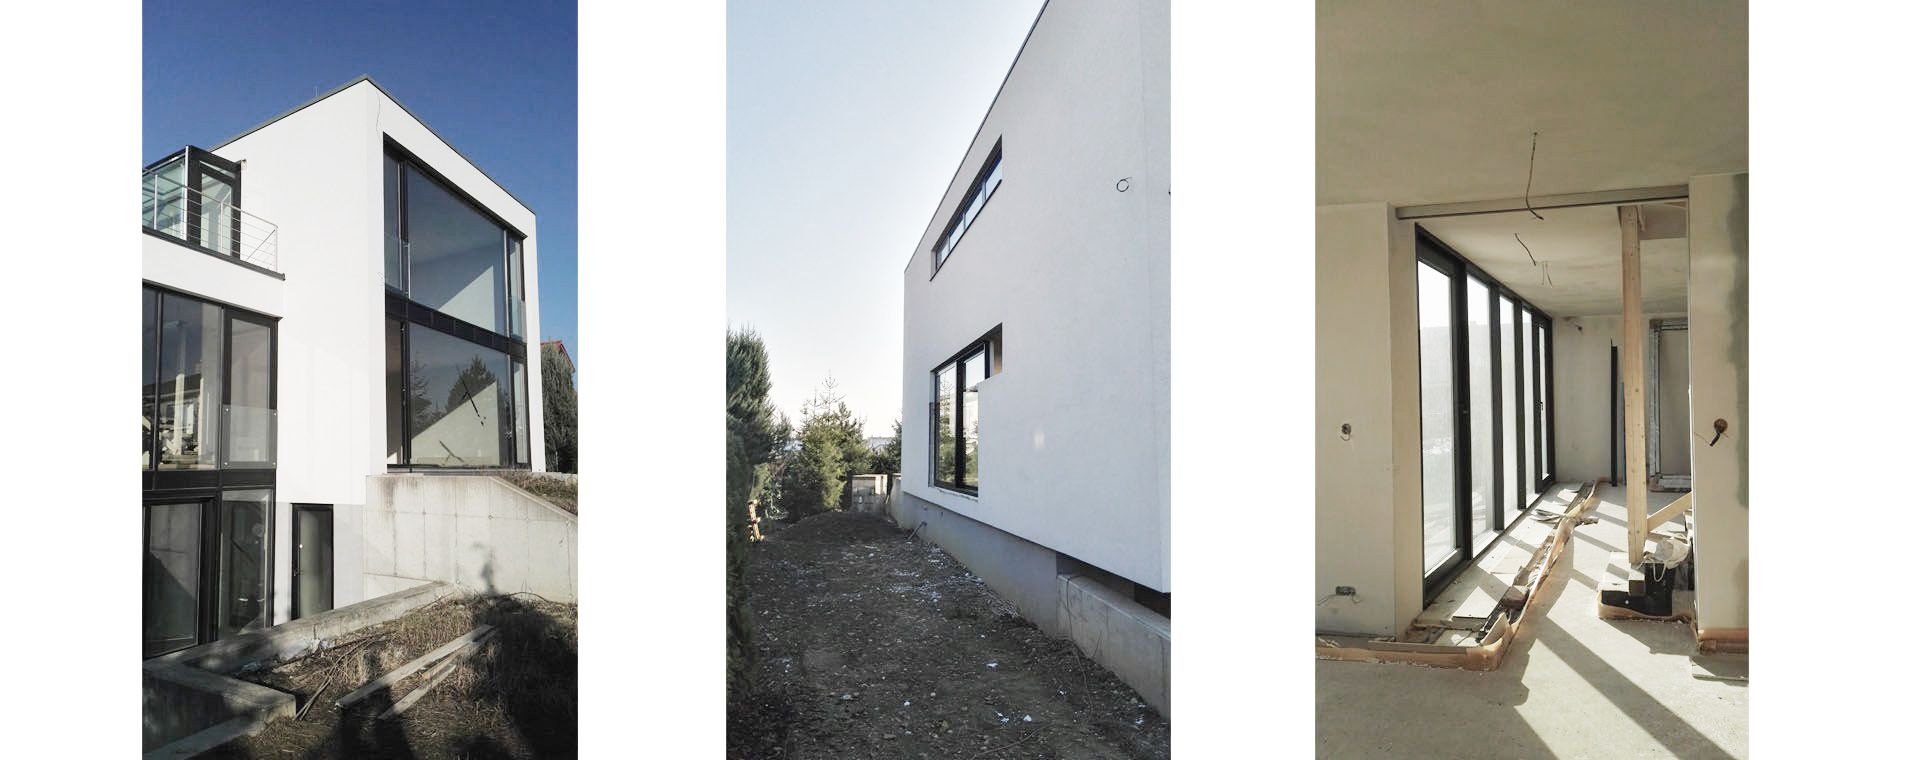 A new vila, Libus, Prague 4 - construction works and extension, 2014-2017, CZ